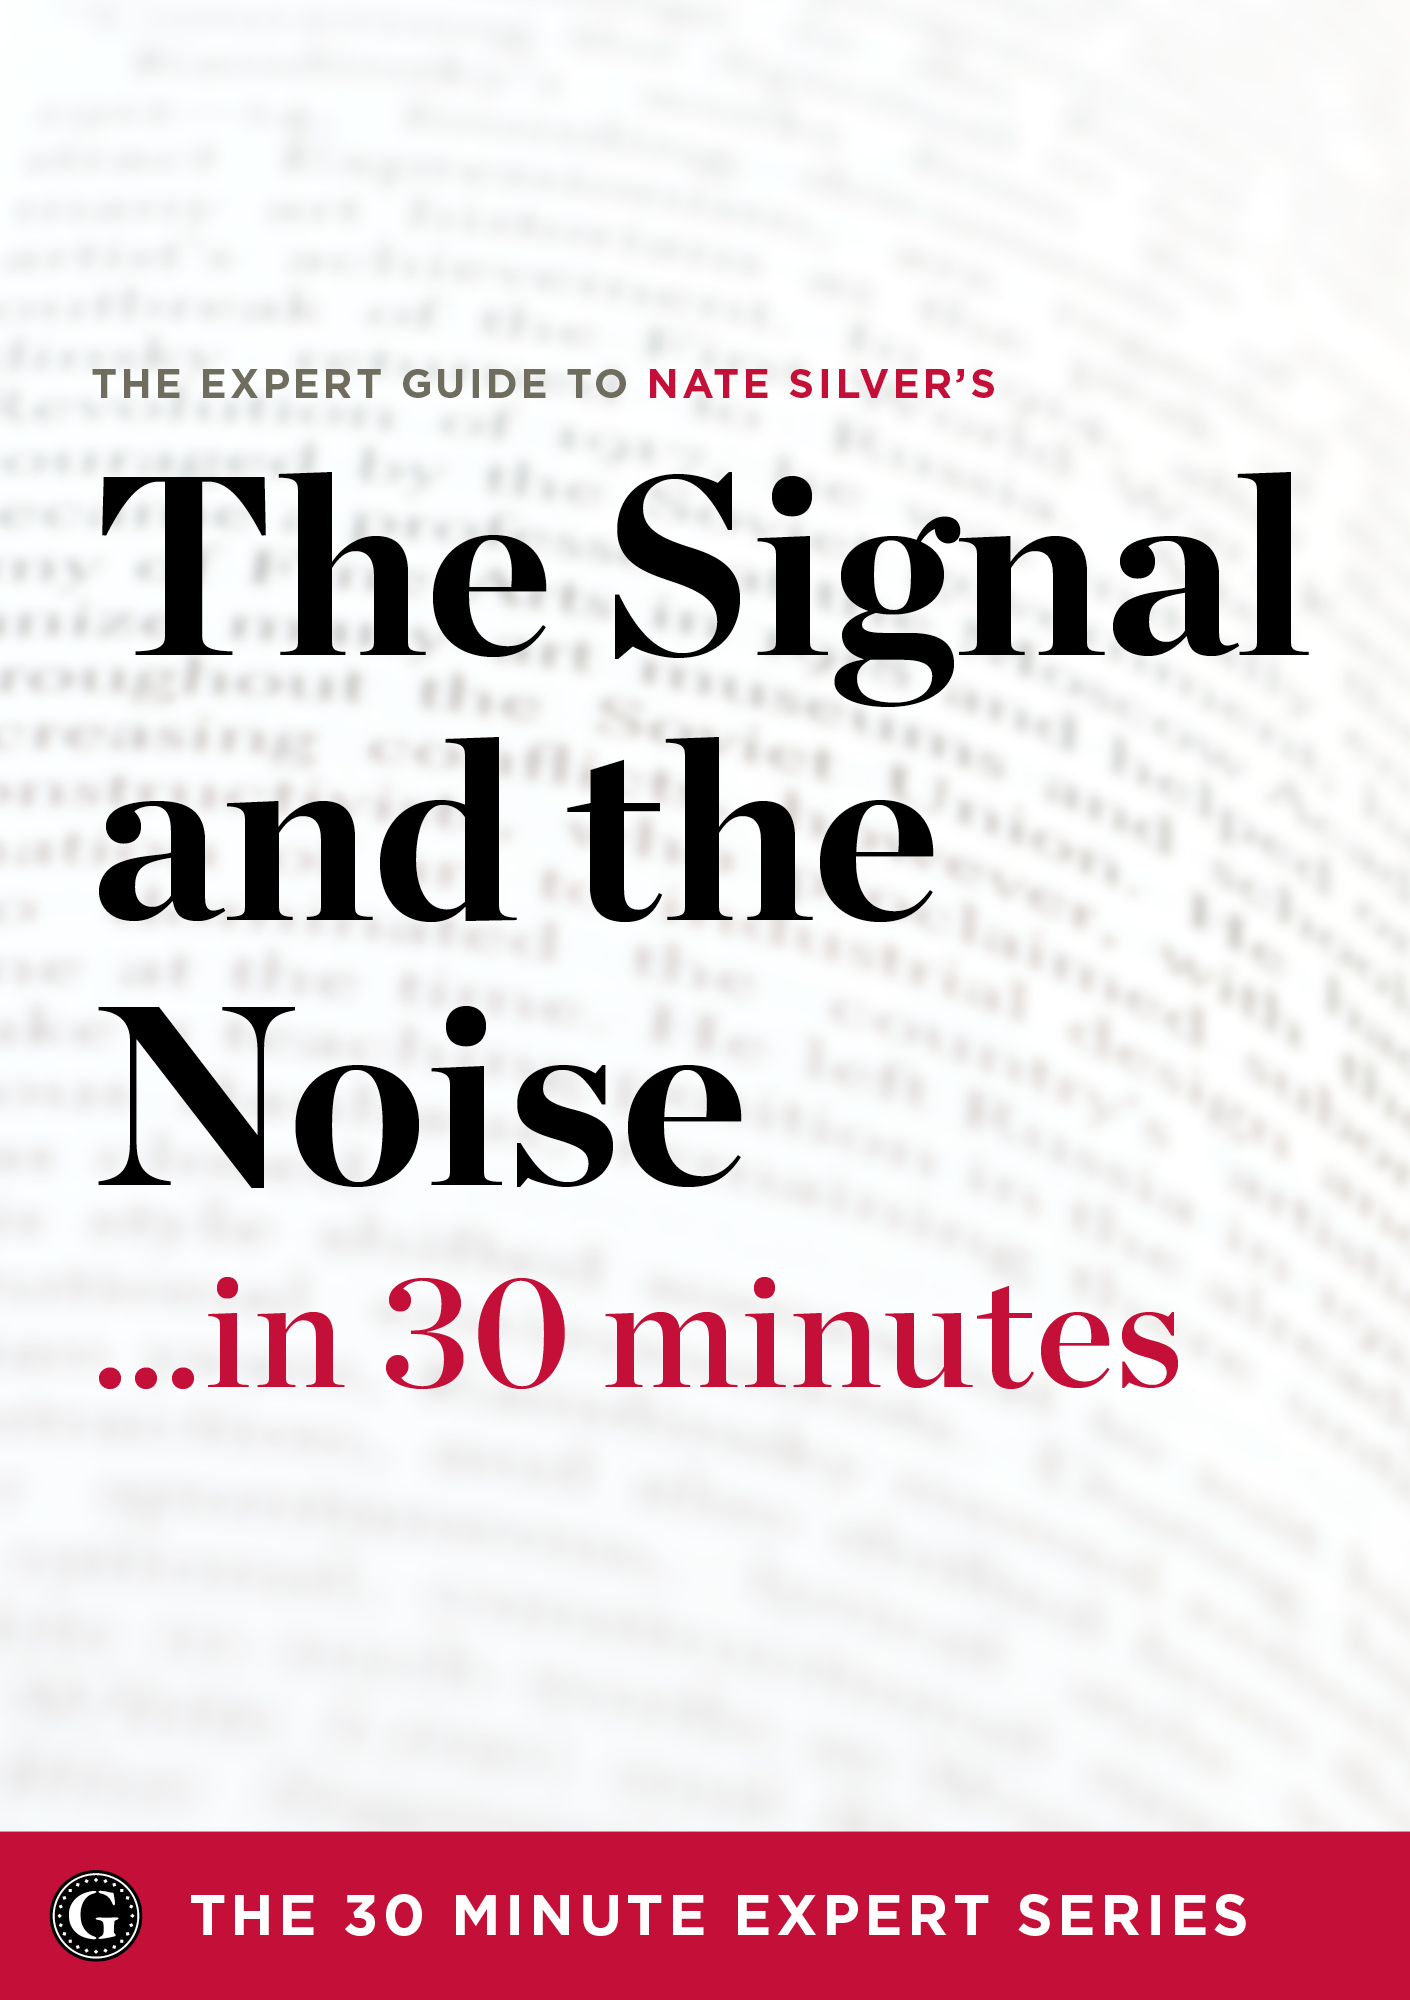 The Signal and the Noise in 30 Minutes - The Expert Guide to Nate Silver's Critically Acclaimed Book (The 30 Minute Expert Series)